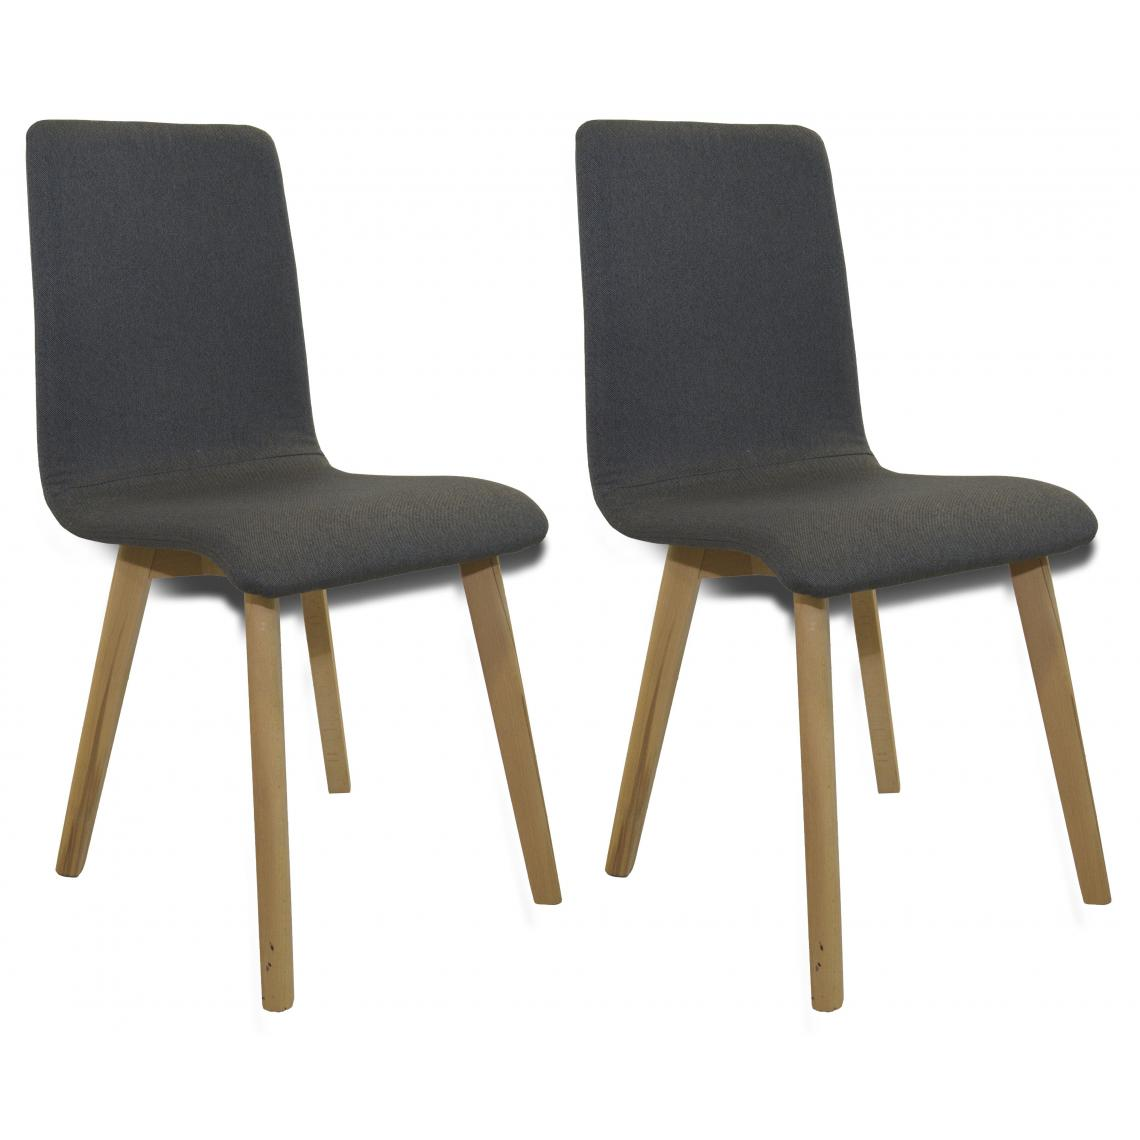 lot de 2 chaises scandinaves grises fonc auda 3suisses. Black Bedroom Furniture Sets. Home Design Ideas